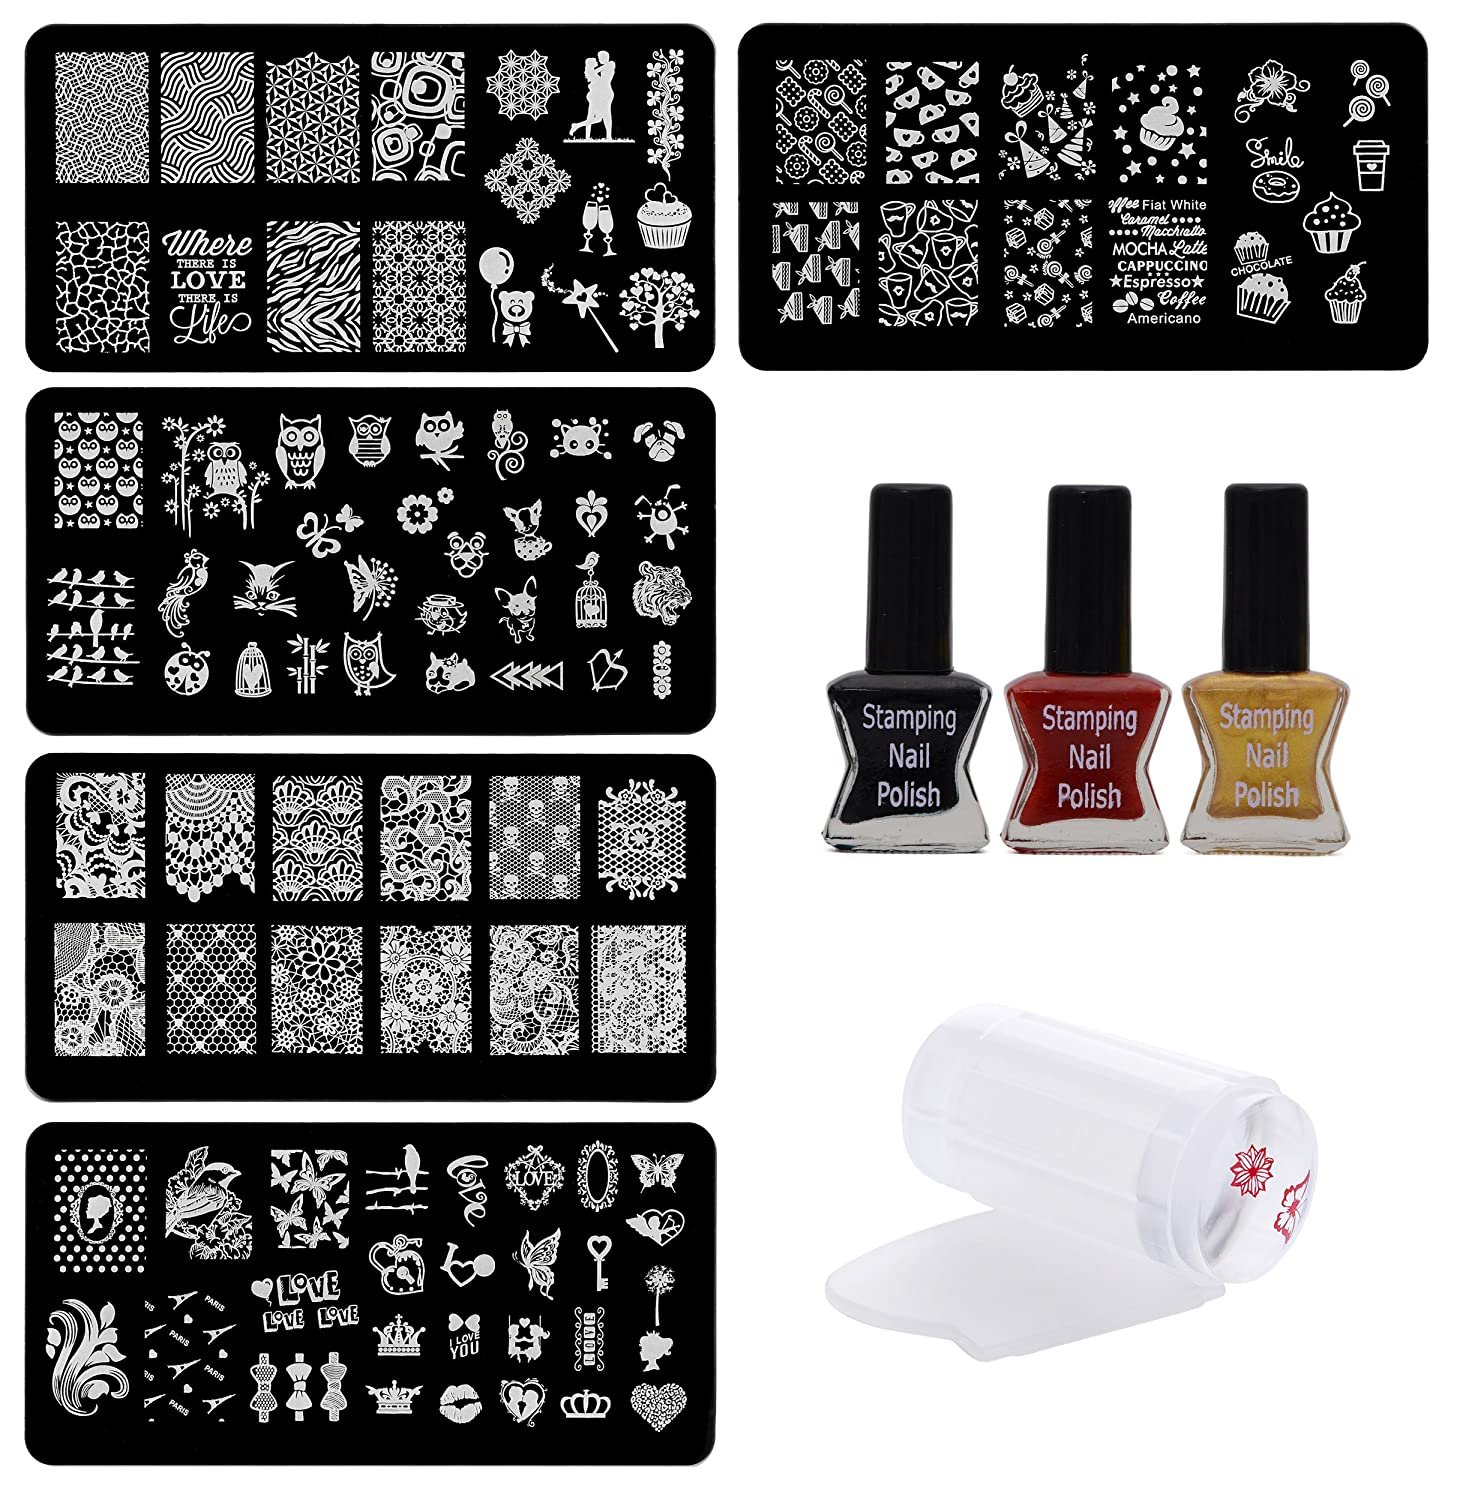 Gifts for Women - Nail Stamping Kit